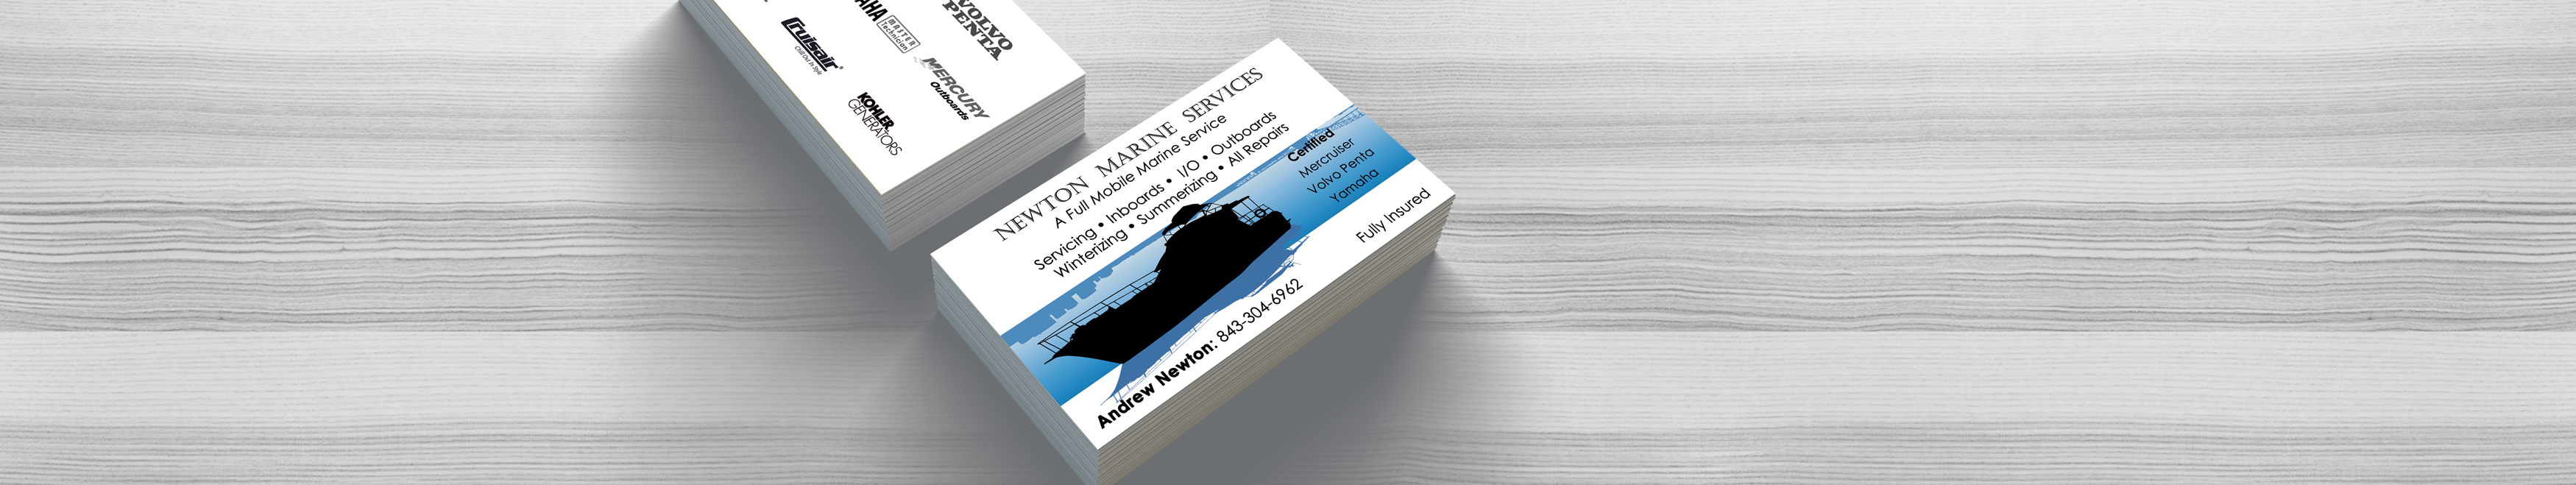 double sided business cards - designed and delivered by Insite Media Design